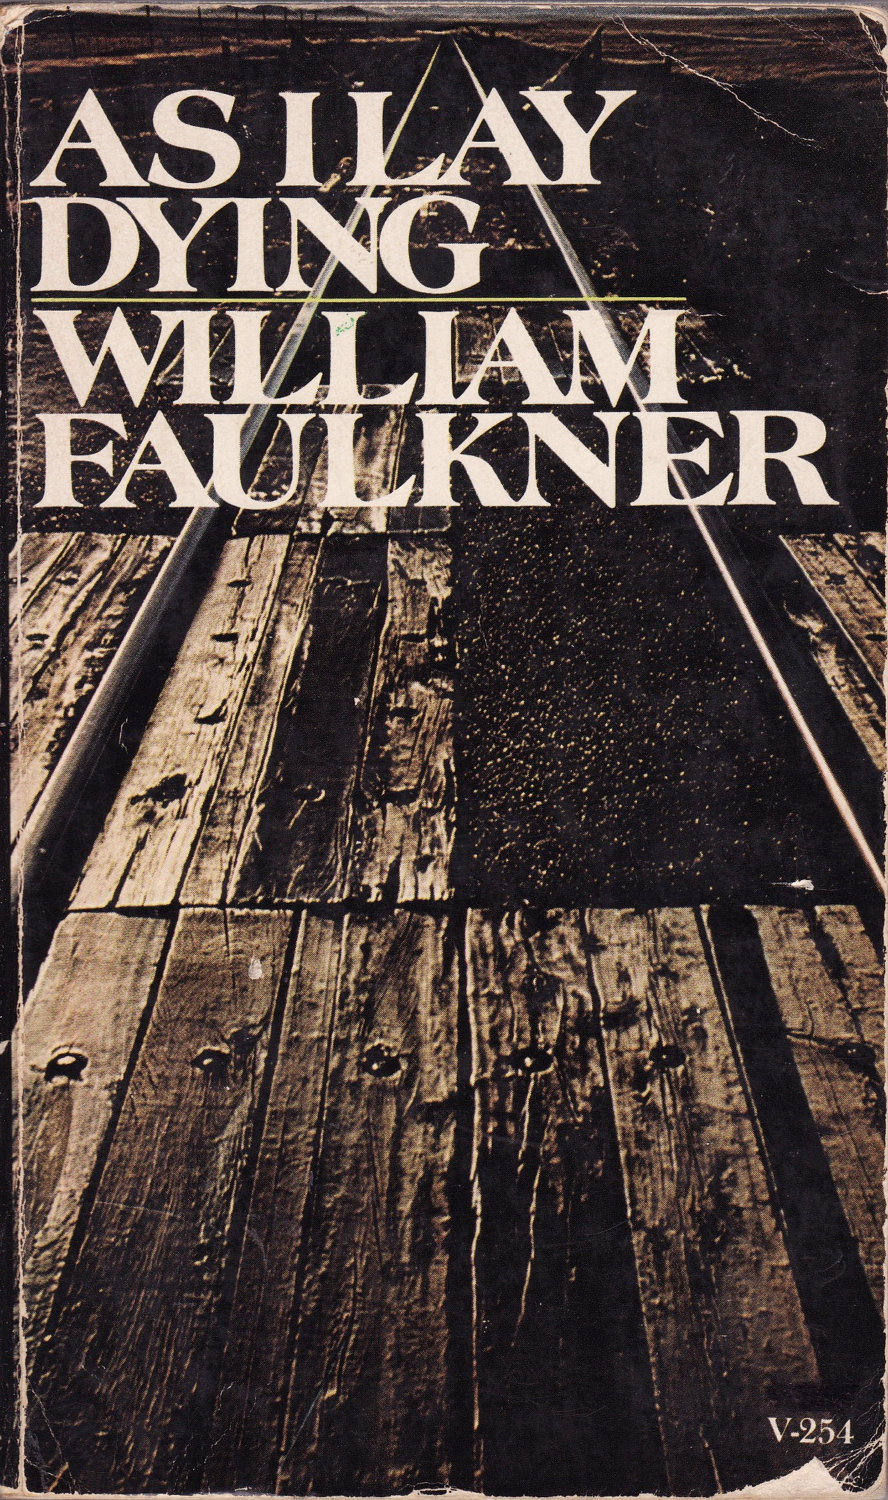 an analysis of the novel as i lay dying by william faulkner As i lay dying by william faulkner 997 words | 4 pages as i lay dying is an american novel authored by william faulkner the novel is among the best-ranked novels in the 20th century literature.